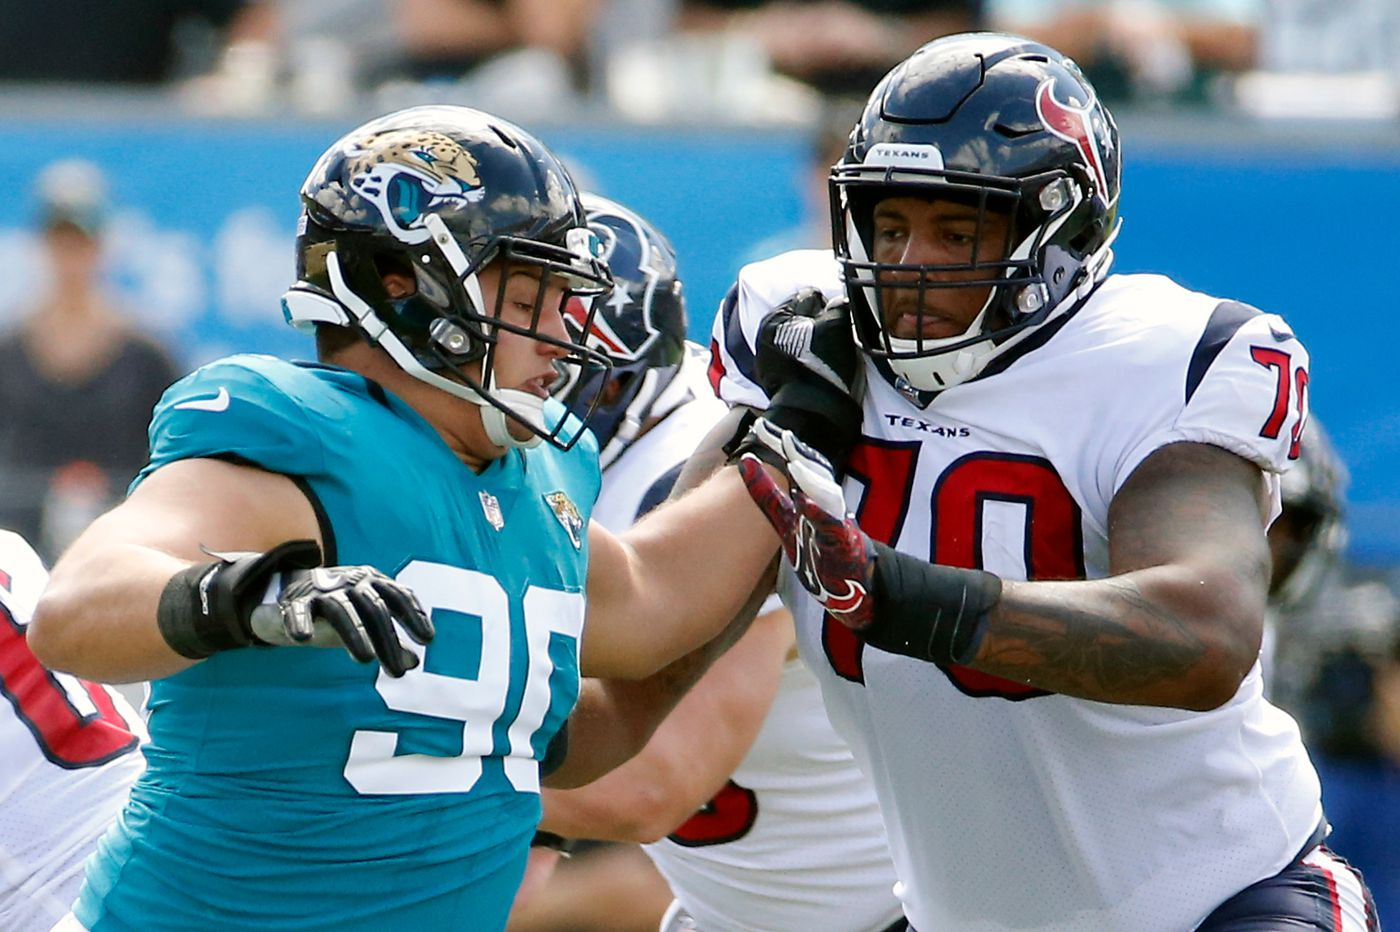 Paulsboro grad Julién Davenport will play in front of family when Houston Texans face Eagles